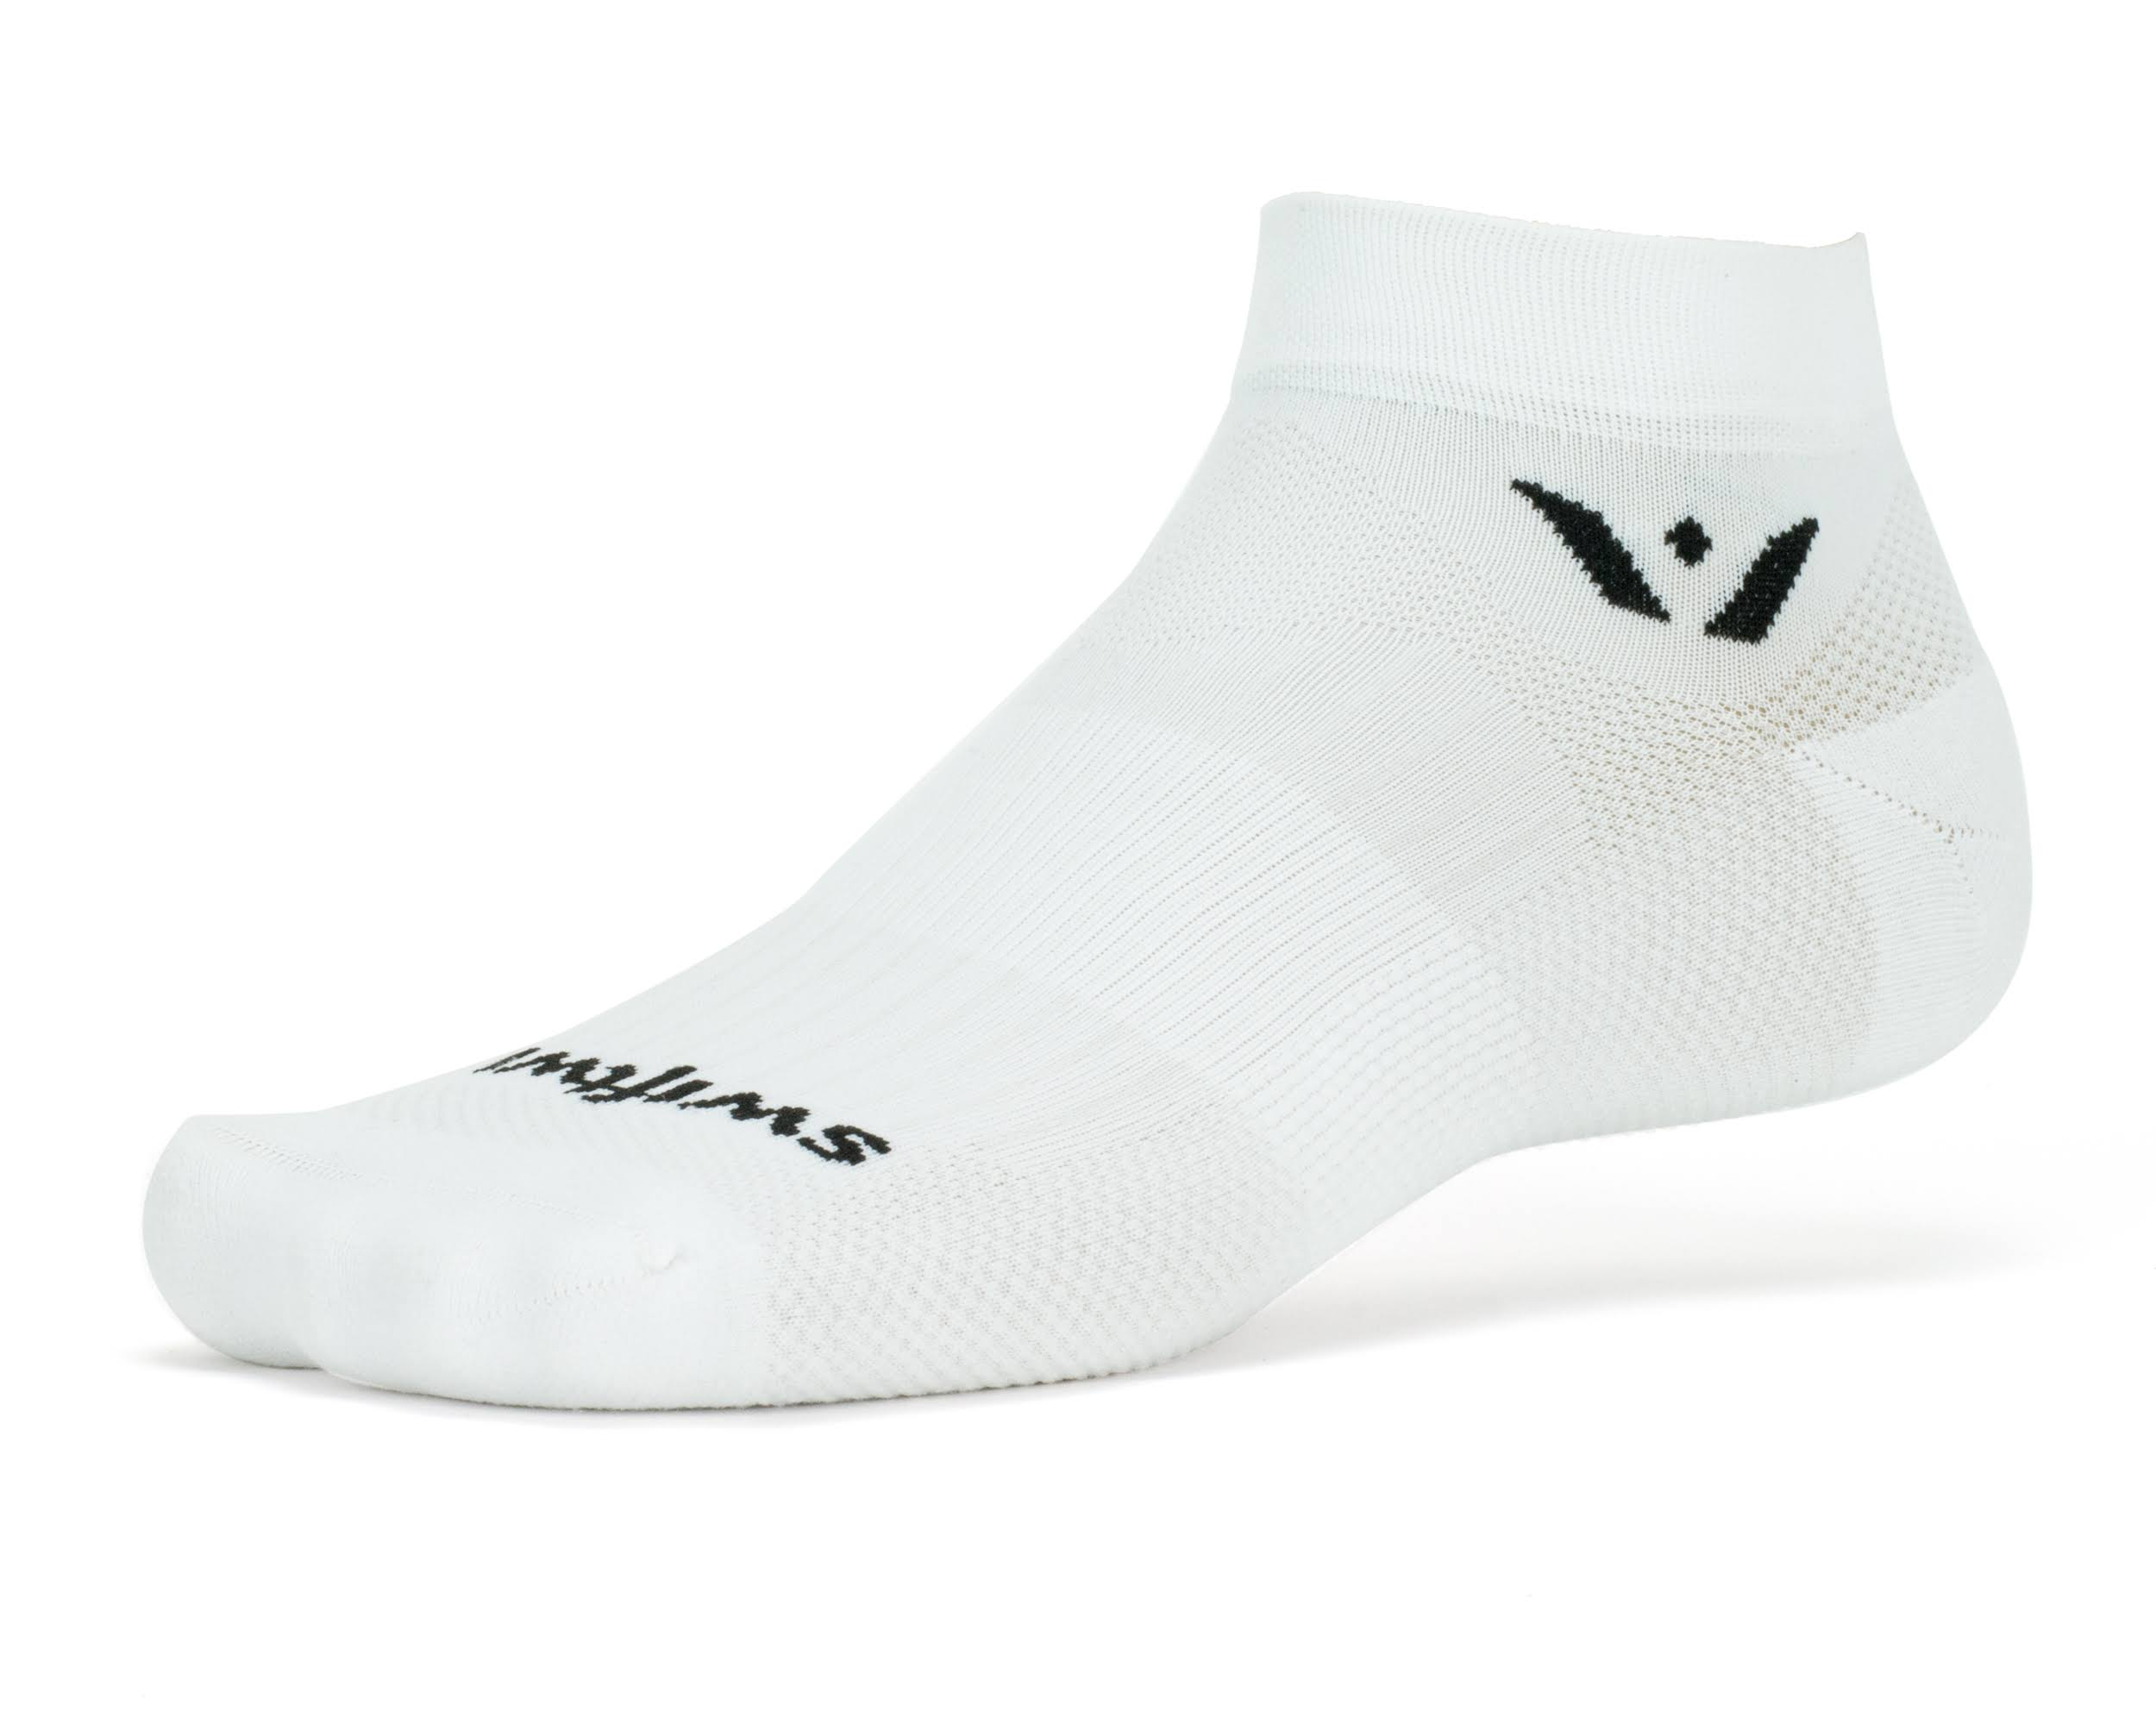 Swiftwick Aspire One Sock - White, XL